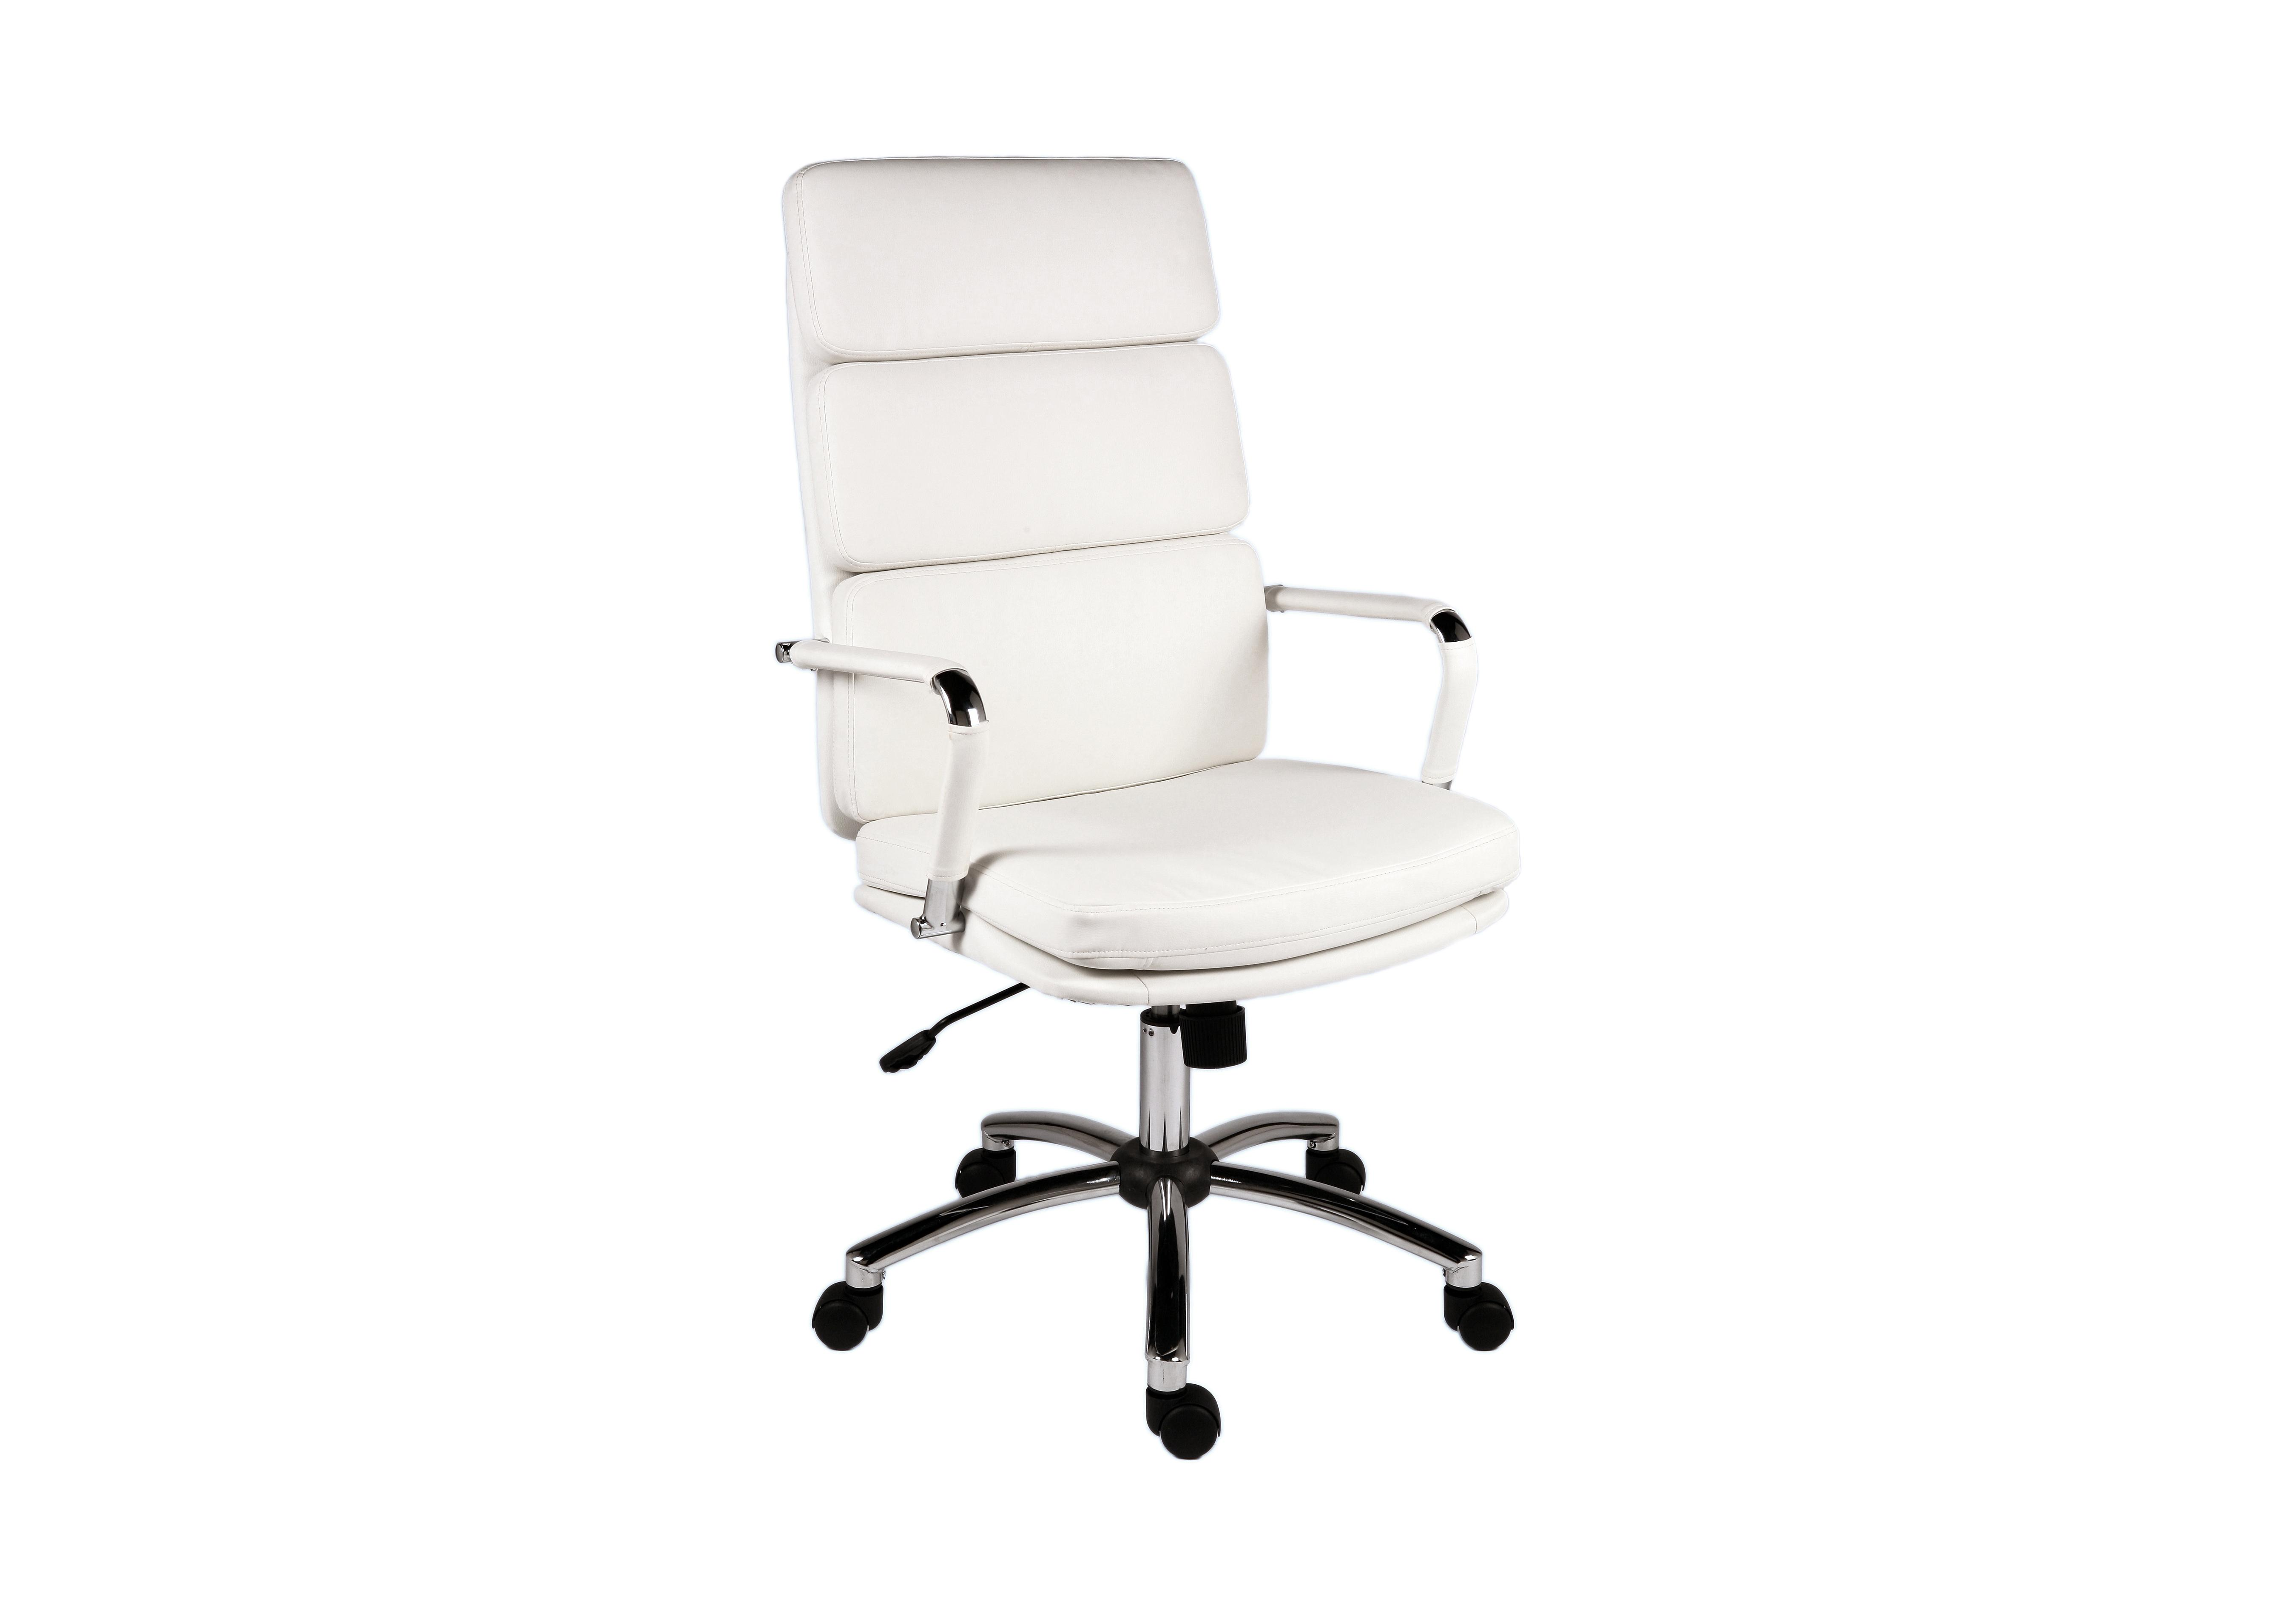 white office chairs furniture village rh furniturevillage co uk Office  Furniture for Women Club Chair Furniture Office 9376567e8